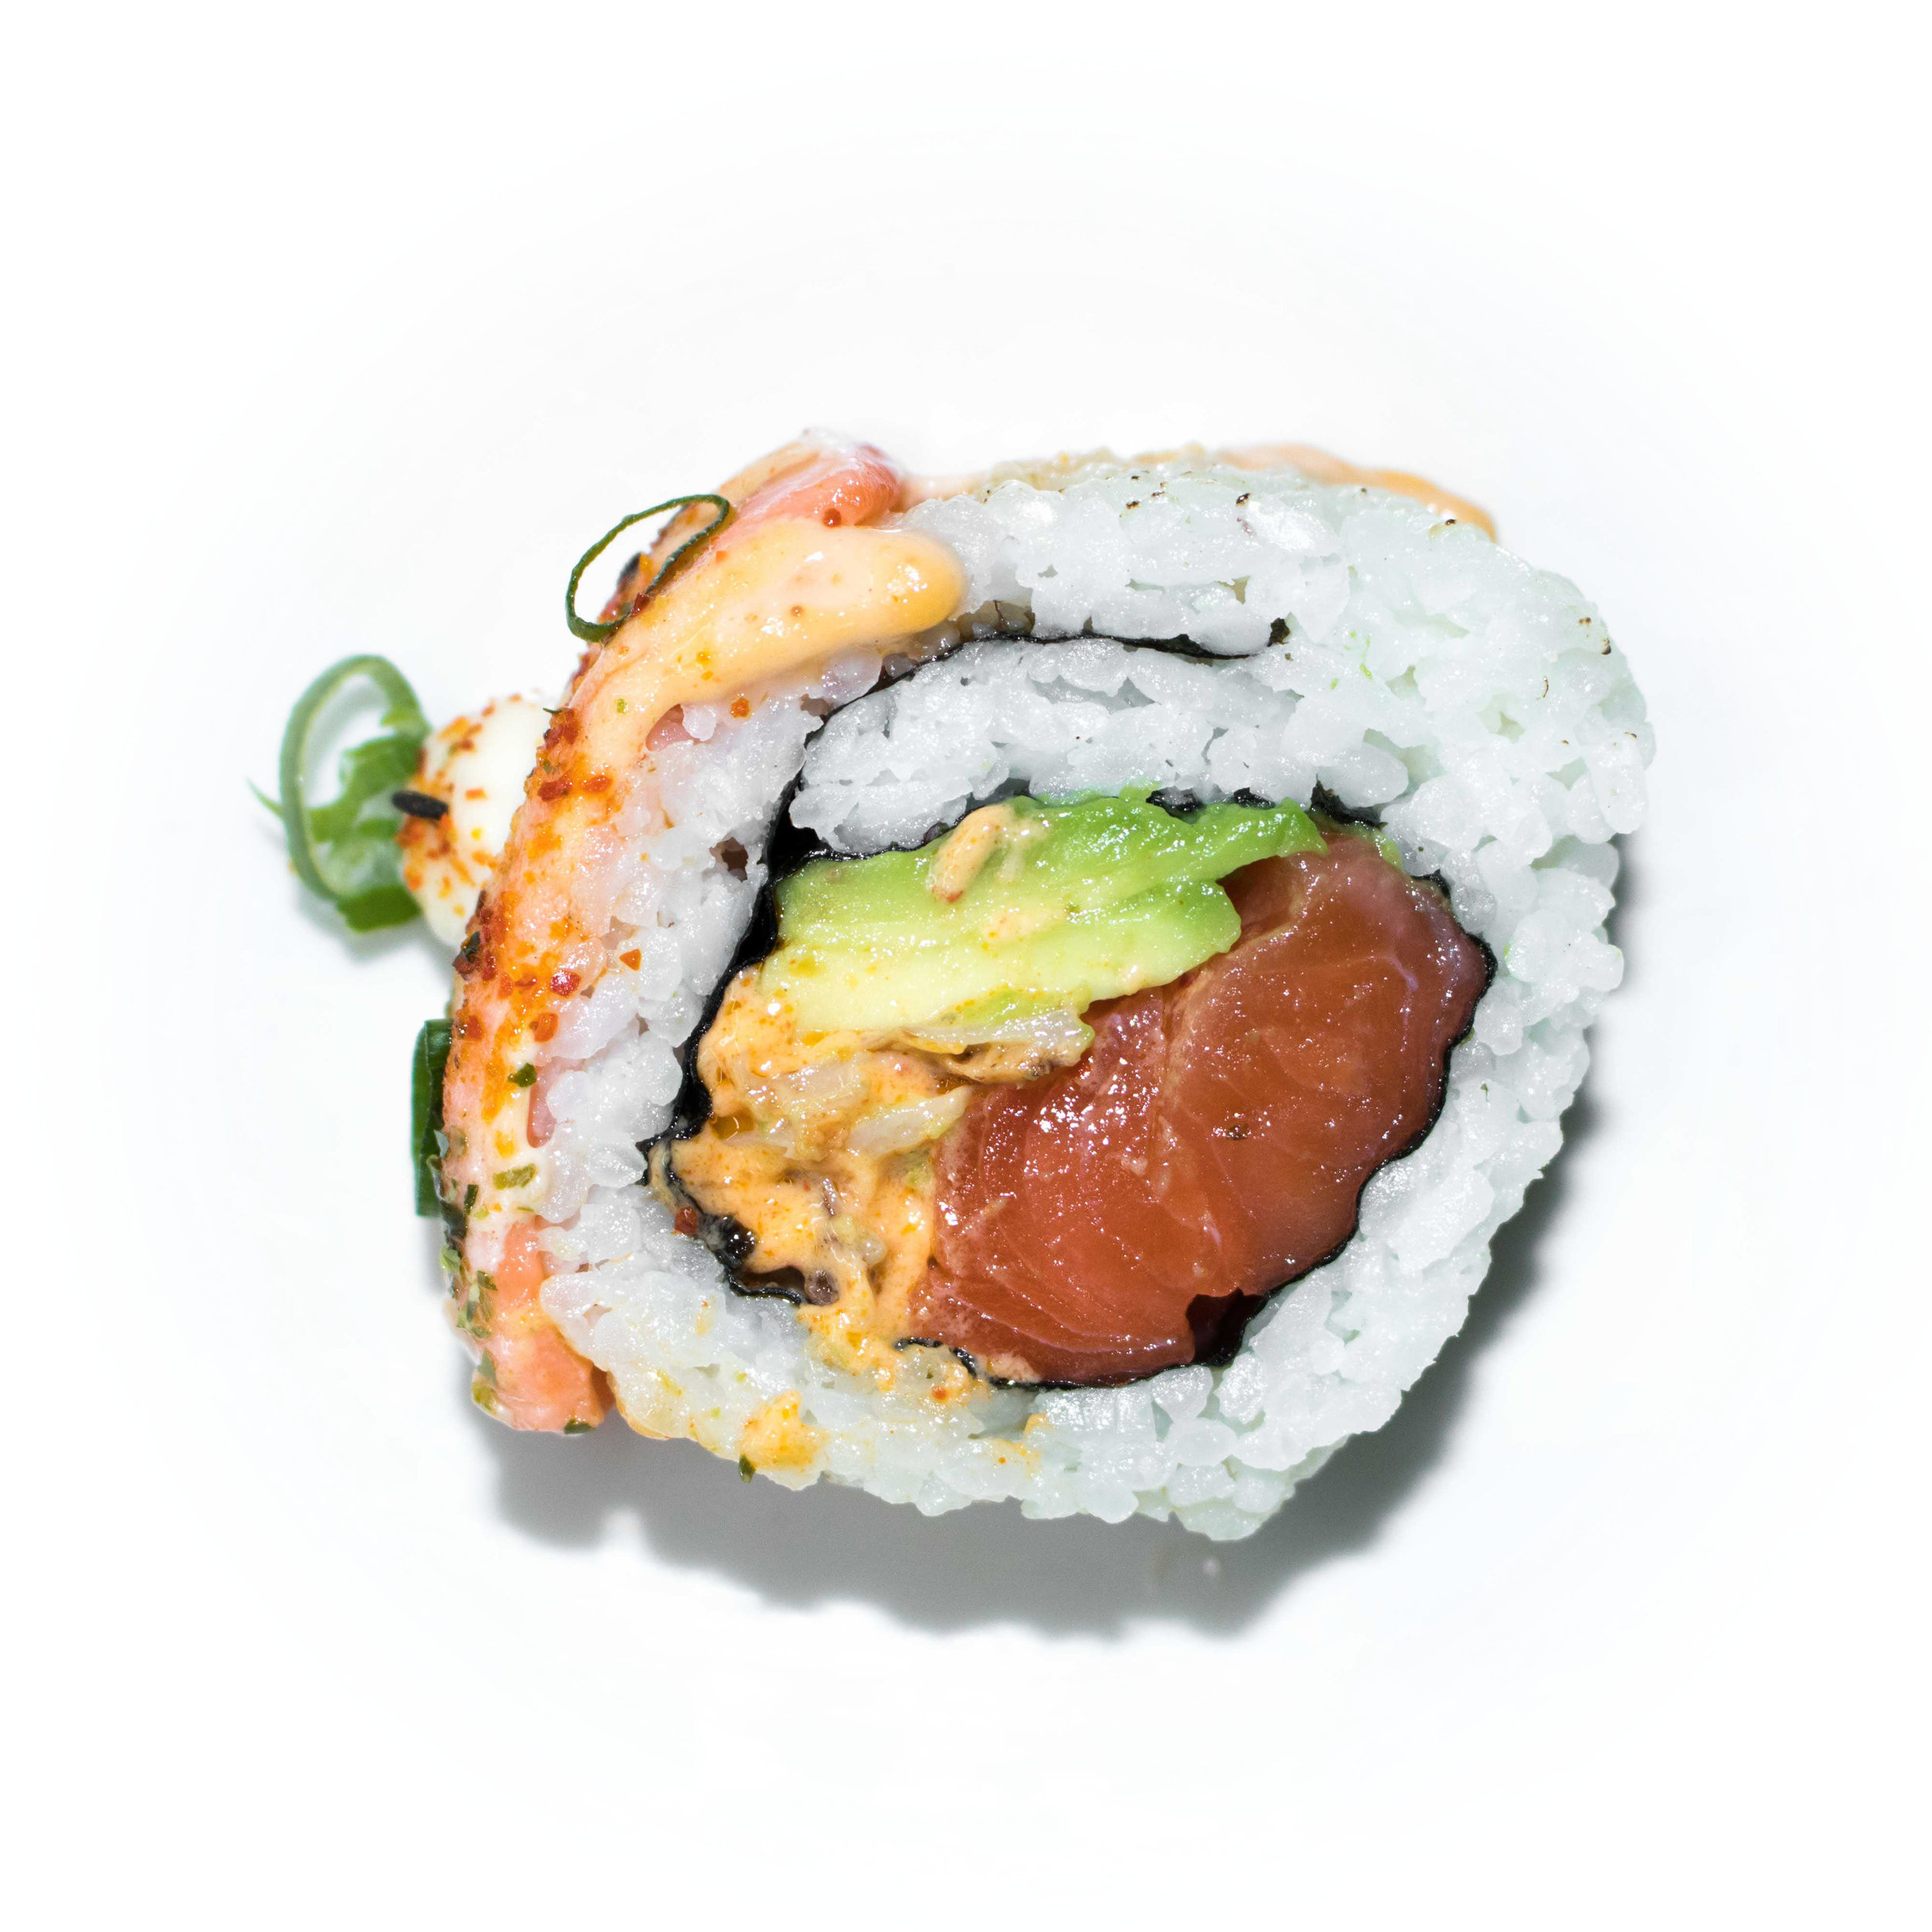 salmon avocado spicy crayfish with sheared salmon topping